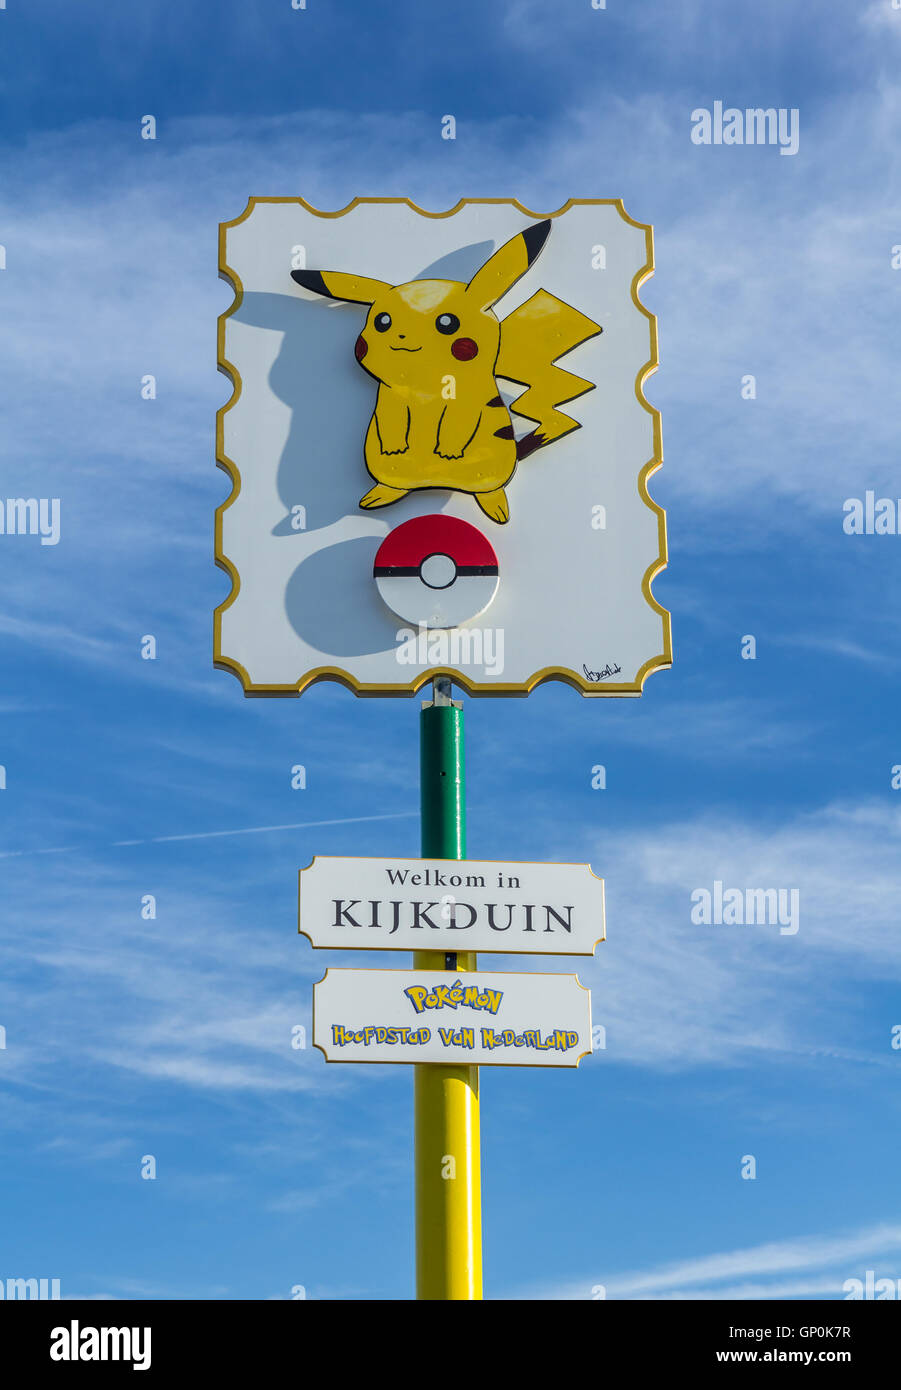 The Hague, the Netherlands - August 25, 2016: Pokémon GO hot spot at Kijkduin The Hague, the Netherlands - Stock Image